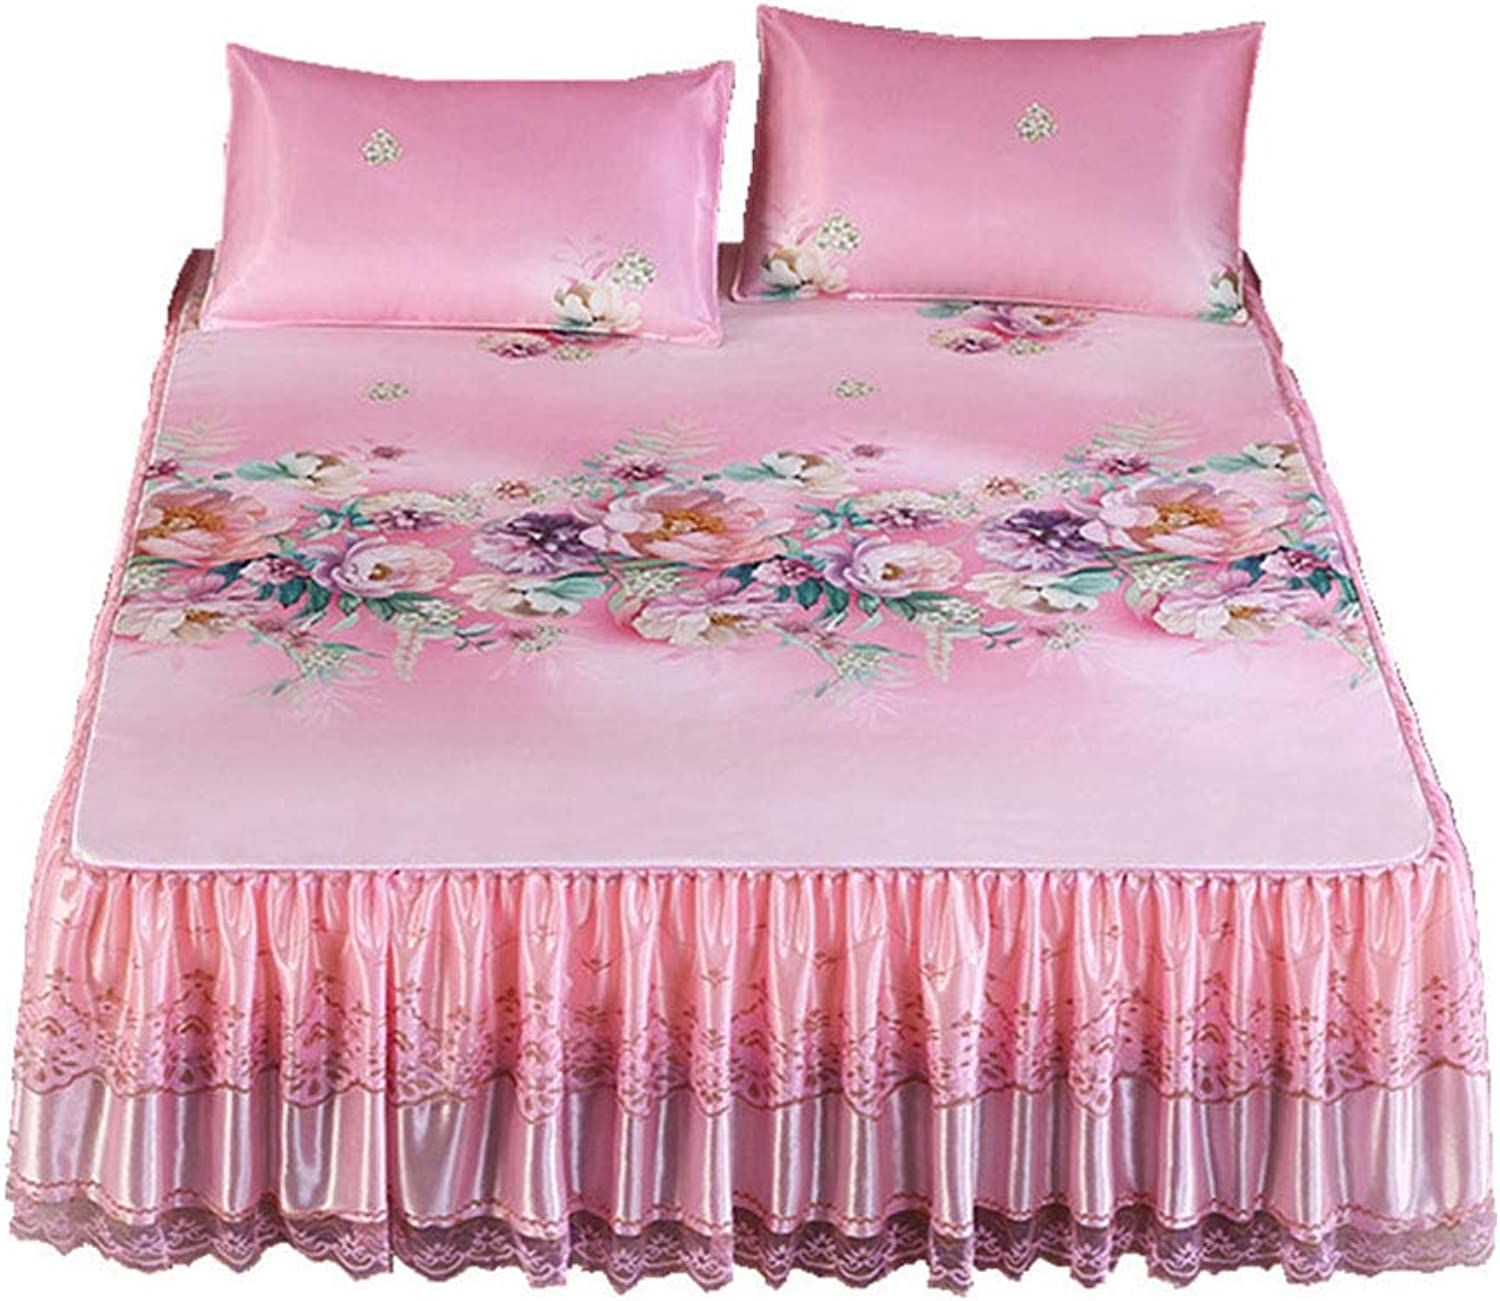 Summer Mattress, Three-Piece, Lace Bed Skirt Printing Ice Silk Cooling Folding Sleeping Pad, Suitable for Home, Dormitory, Gift Pink 2X2.2M